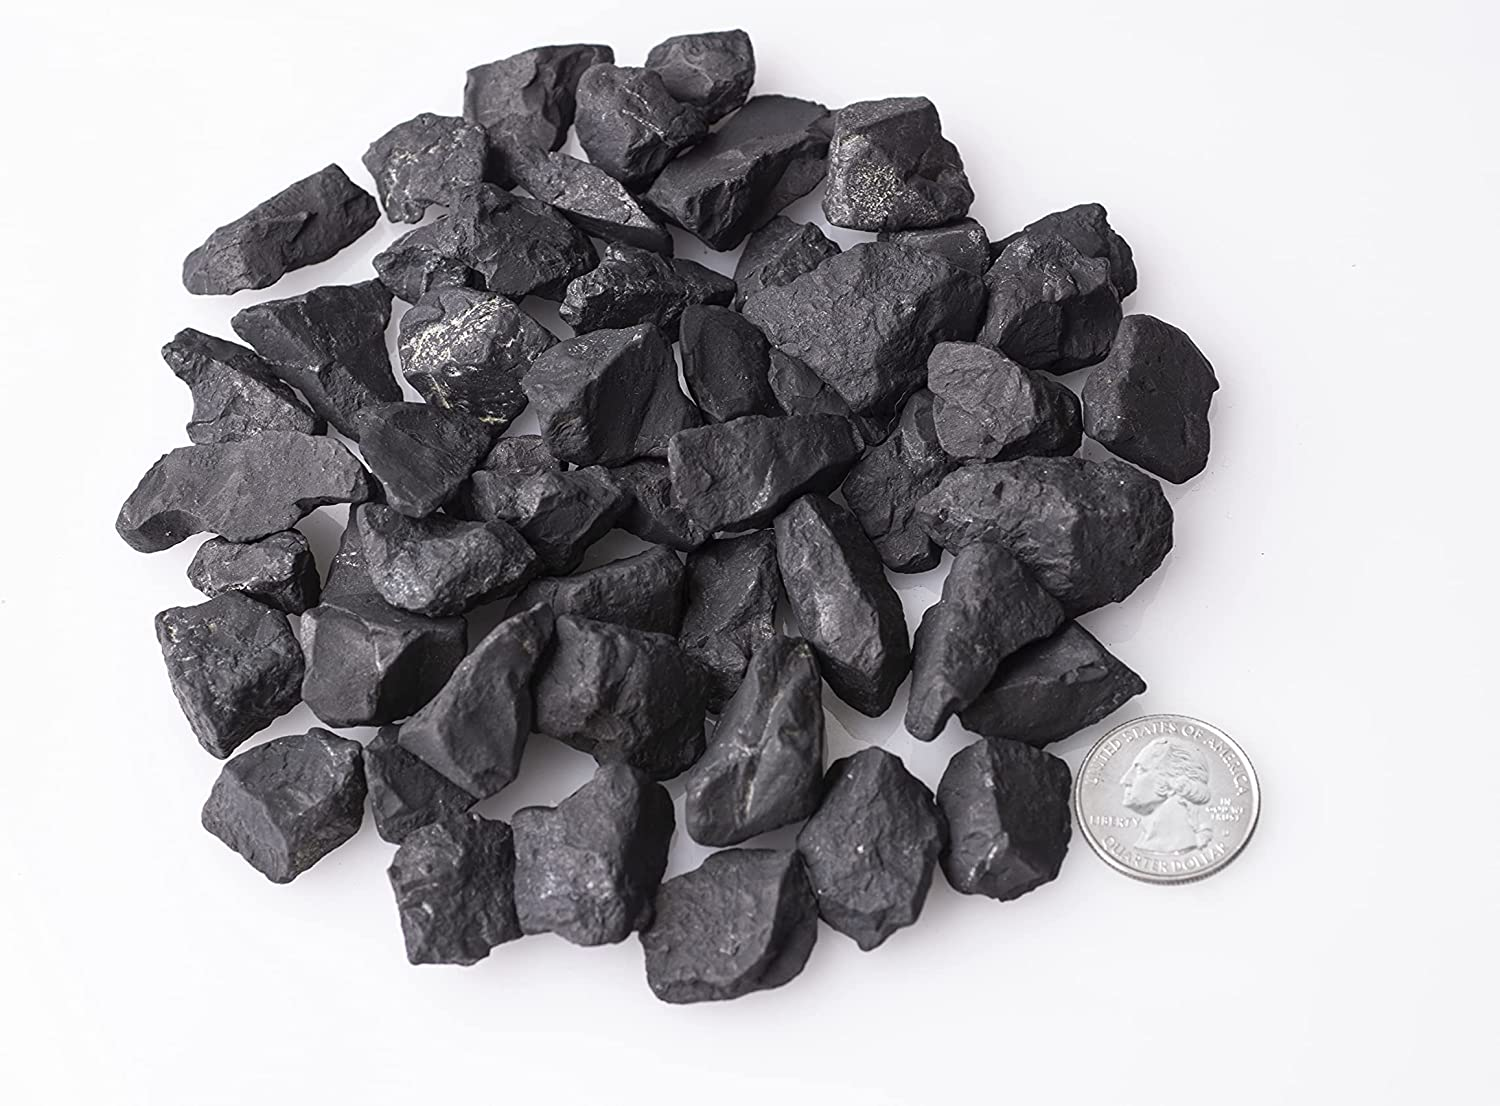 SHUNGITE STONES for water cleaner 5 LB Natural mineral from Karelia Russia